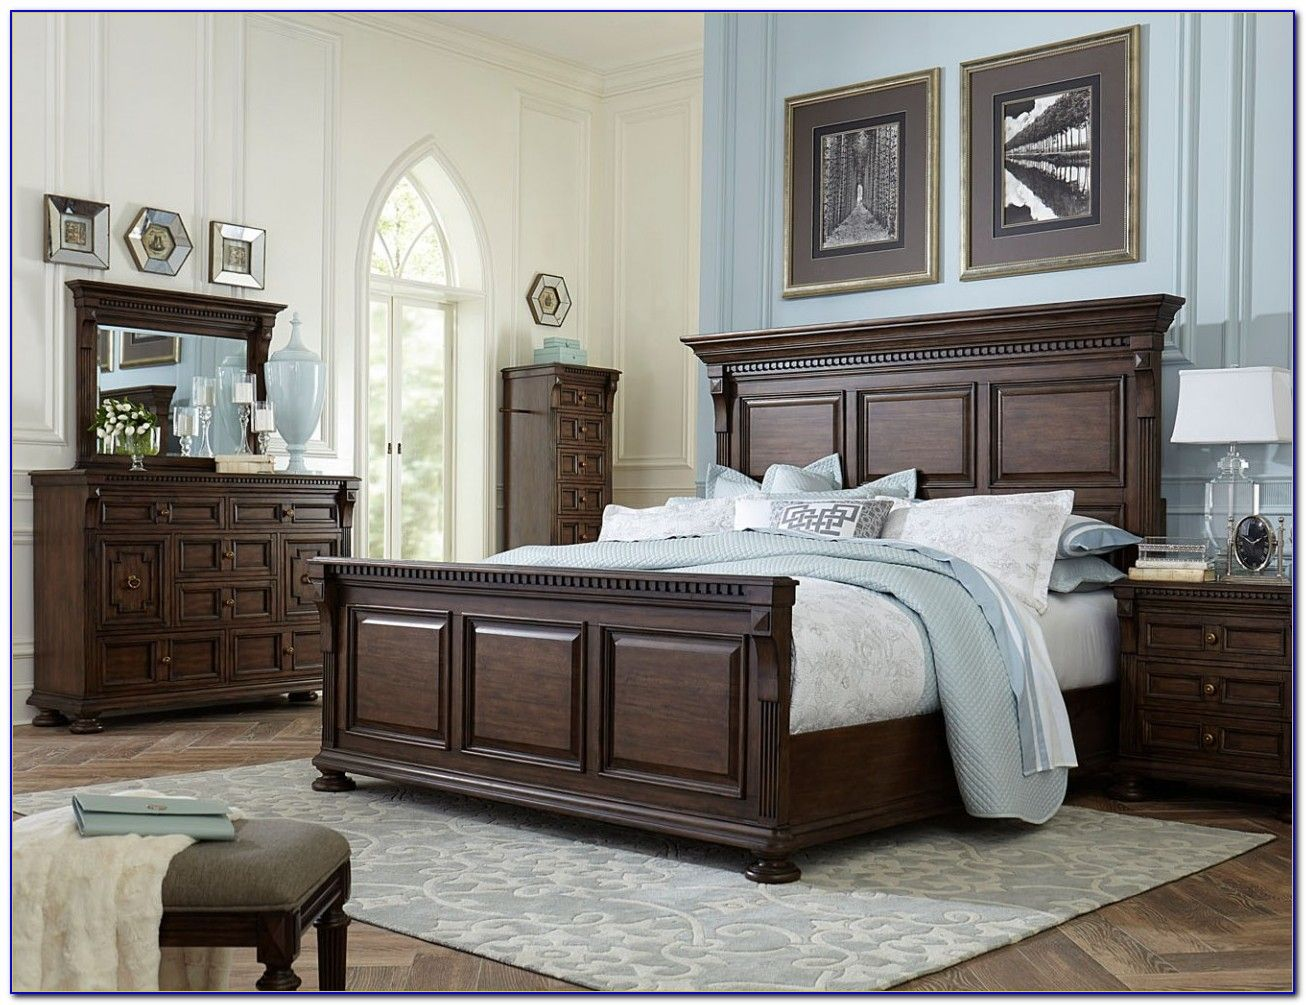 cool Lovely Bedroom Furniture Hardware 67 For Home Decor Ideas with ...